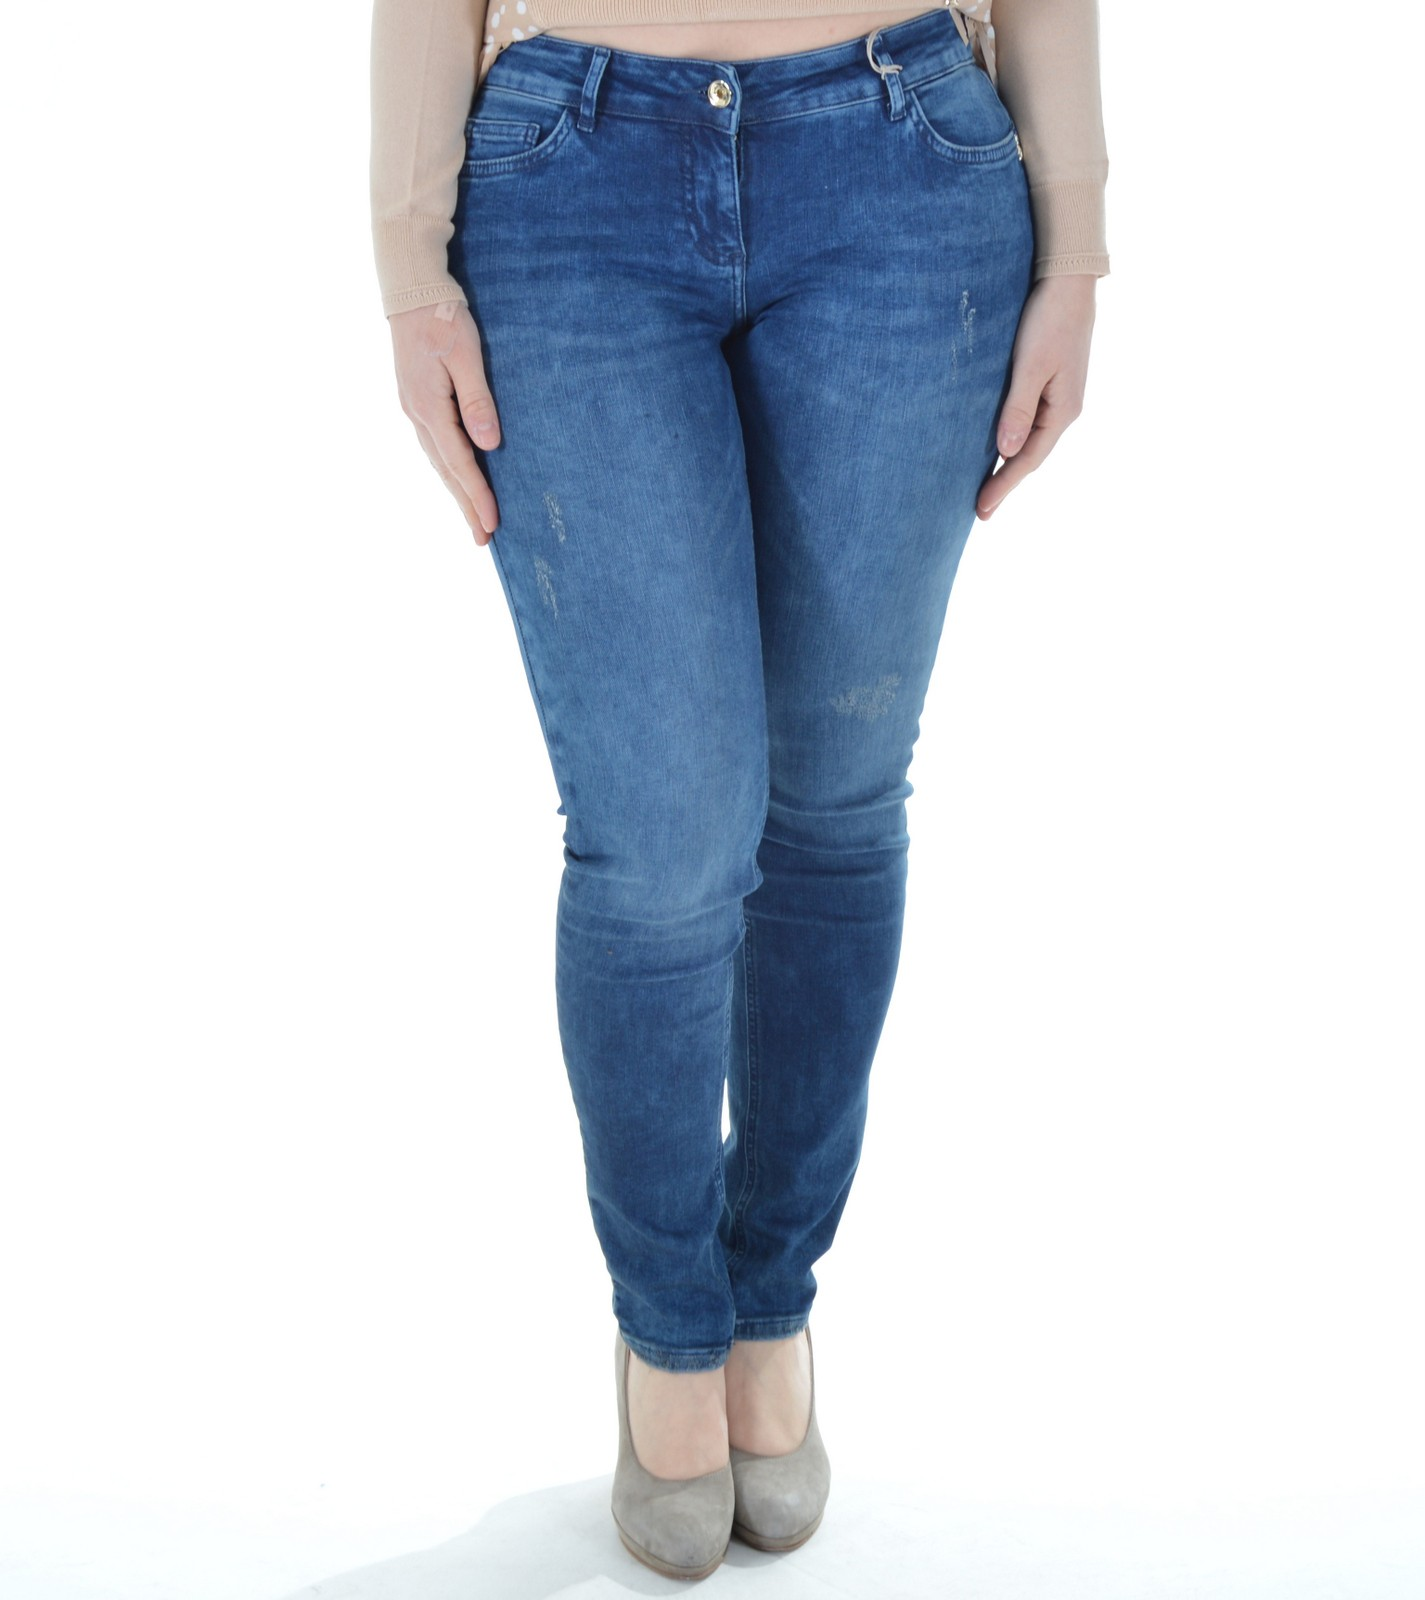 big sale d64b7 e972f Patrizia Pepe - Jeans donna in denim strech push-up BJ0210 A1WZA